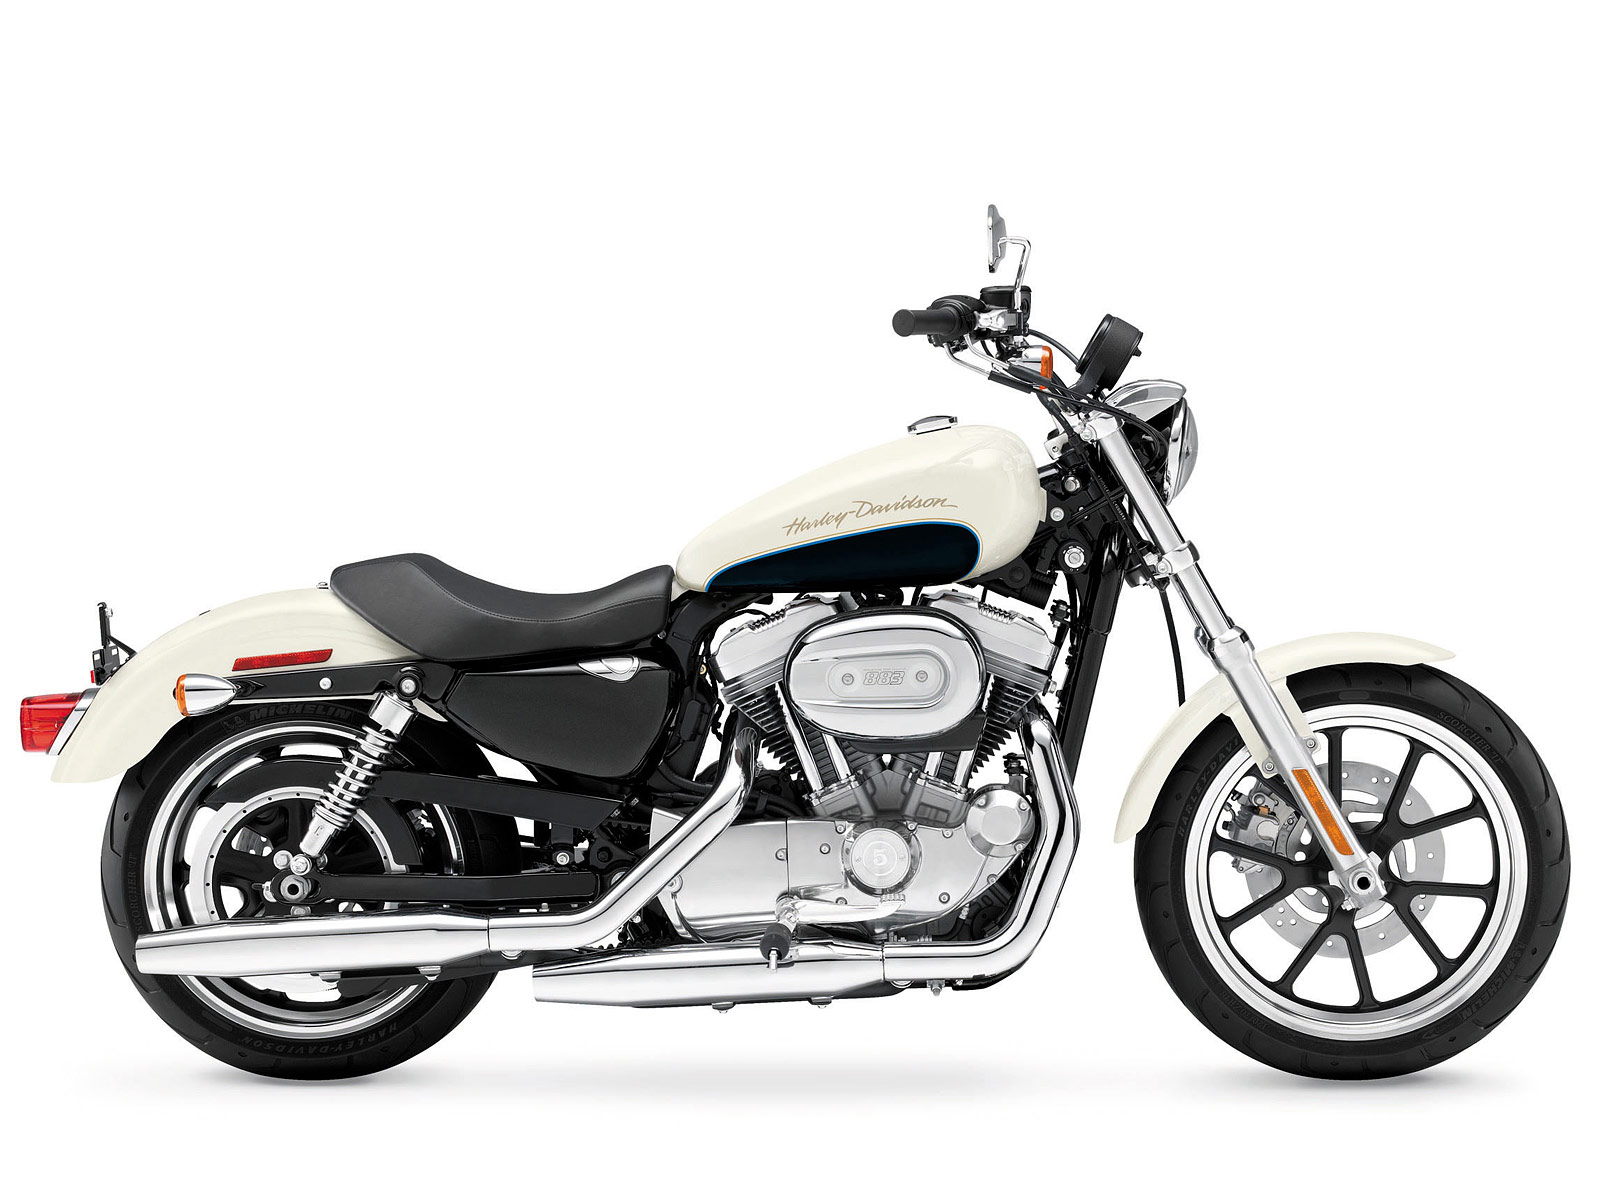 Harley Davidson  Superlow Specifications